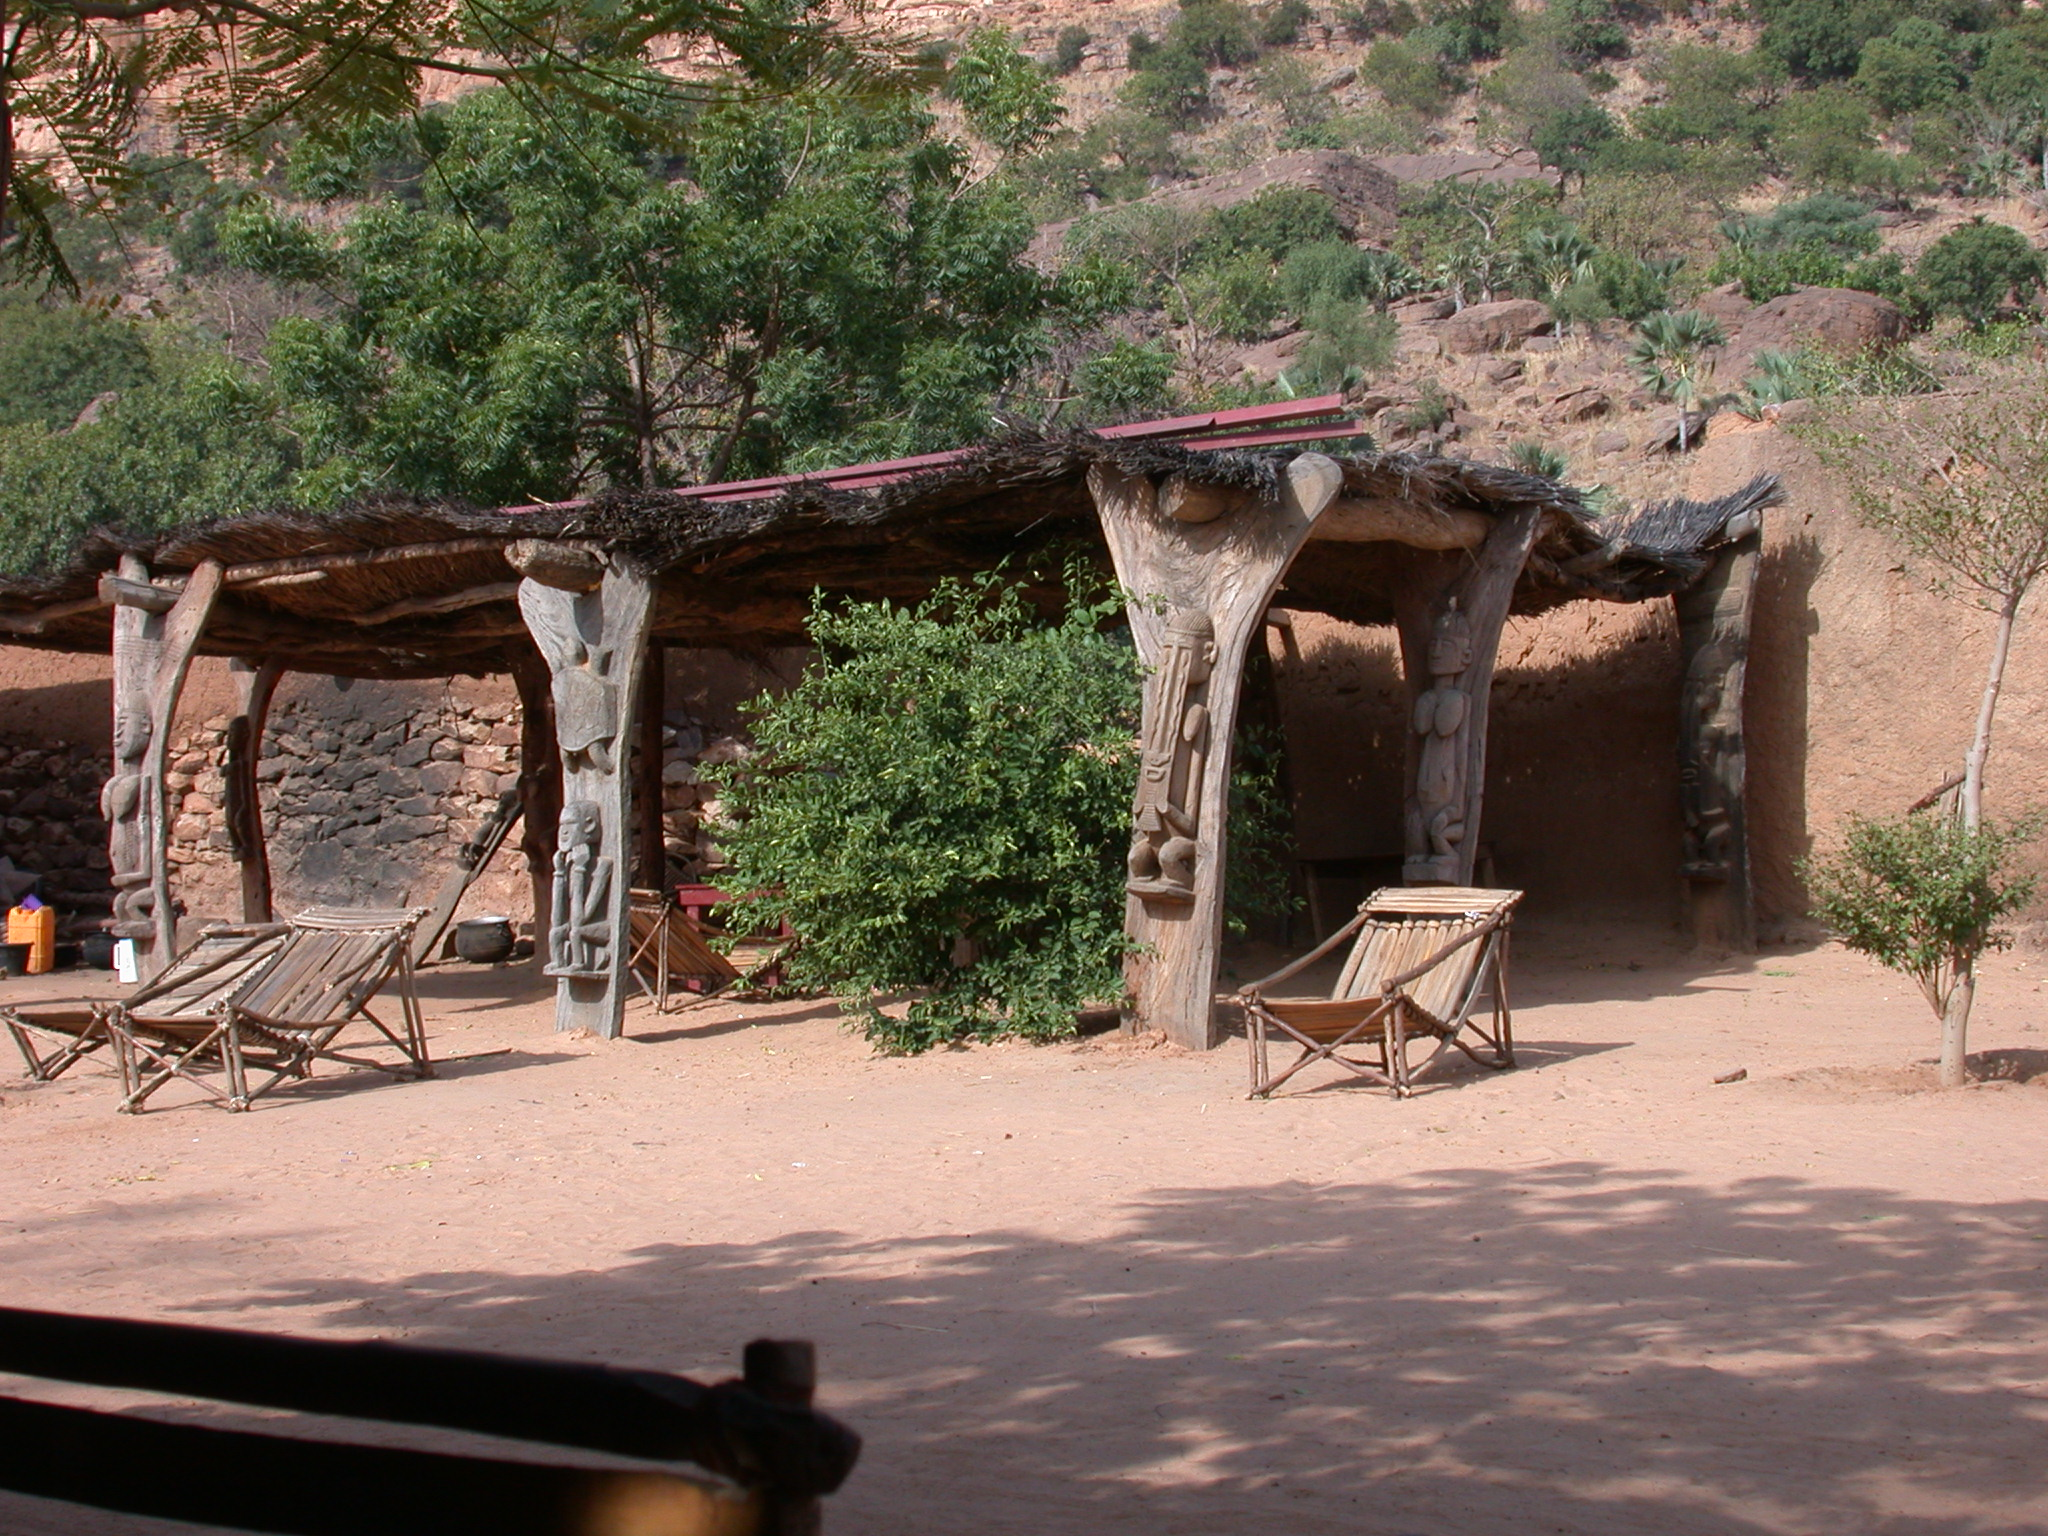 Hotel Courtyard in Village, Dogon Country, Mali